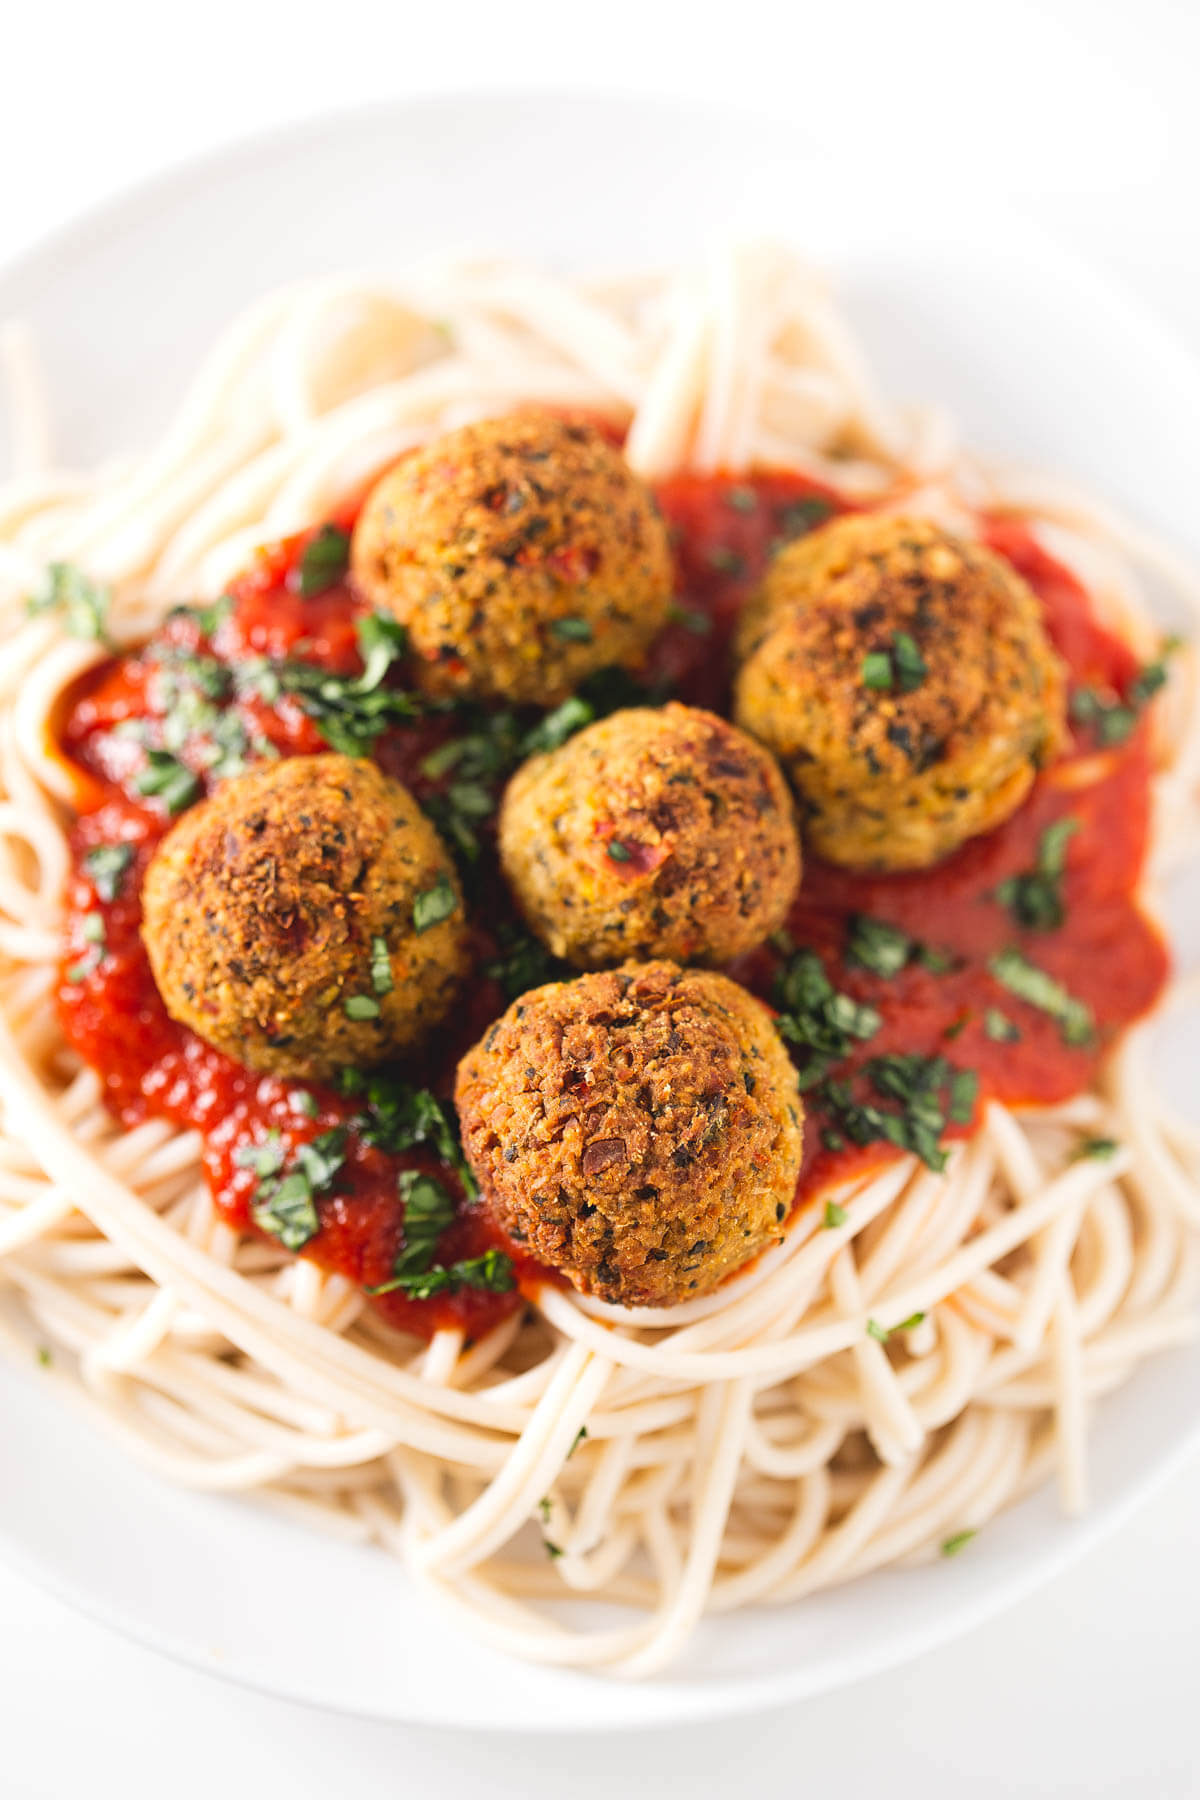 Vegan Ikea-style meatballs: This recipe is inspired by Ikea meatballs, although our version is healthier and has no additives. They are lighter because they are baked.